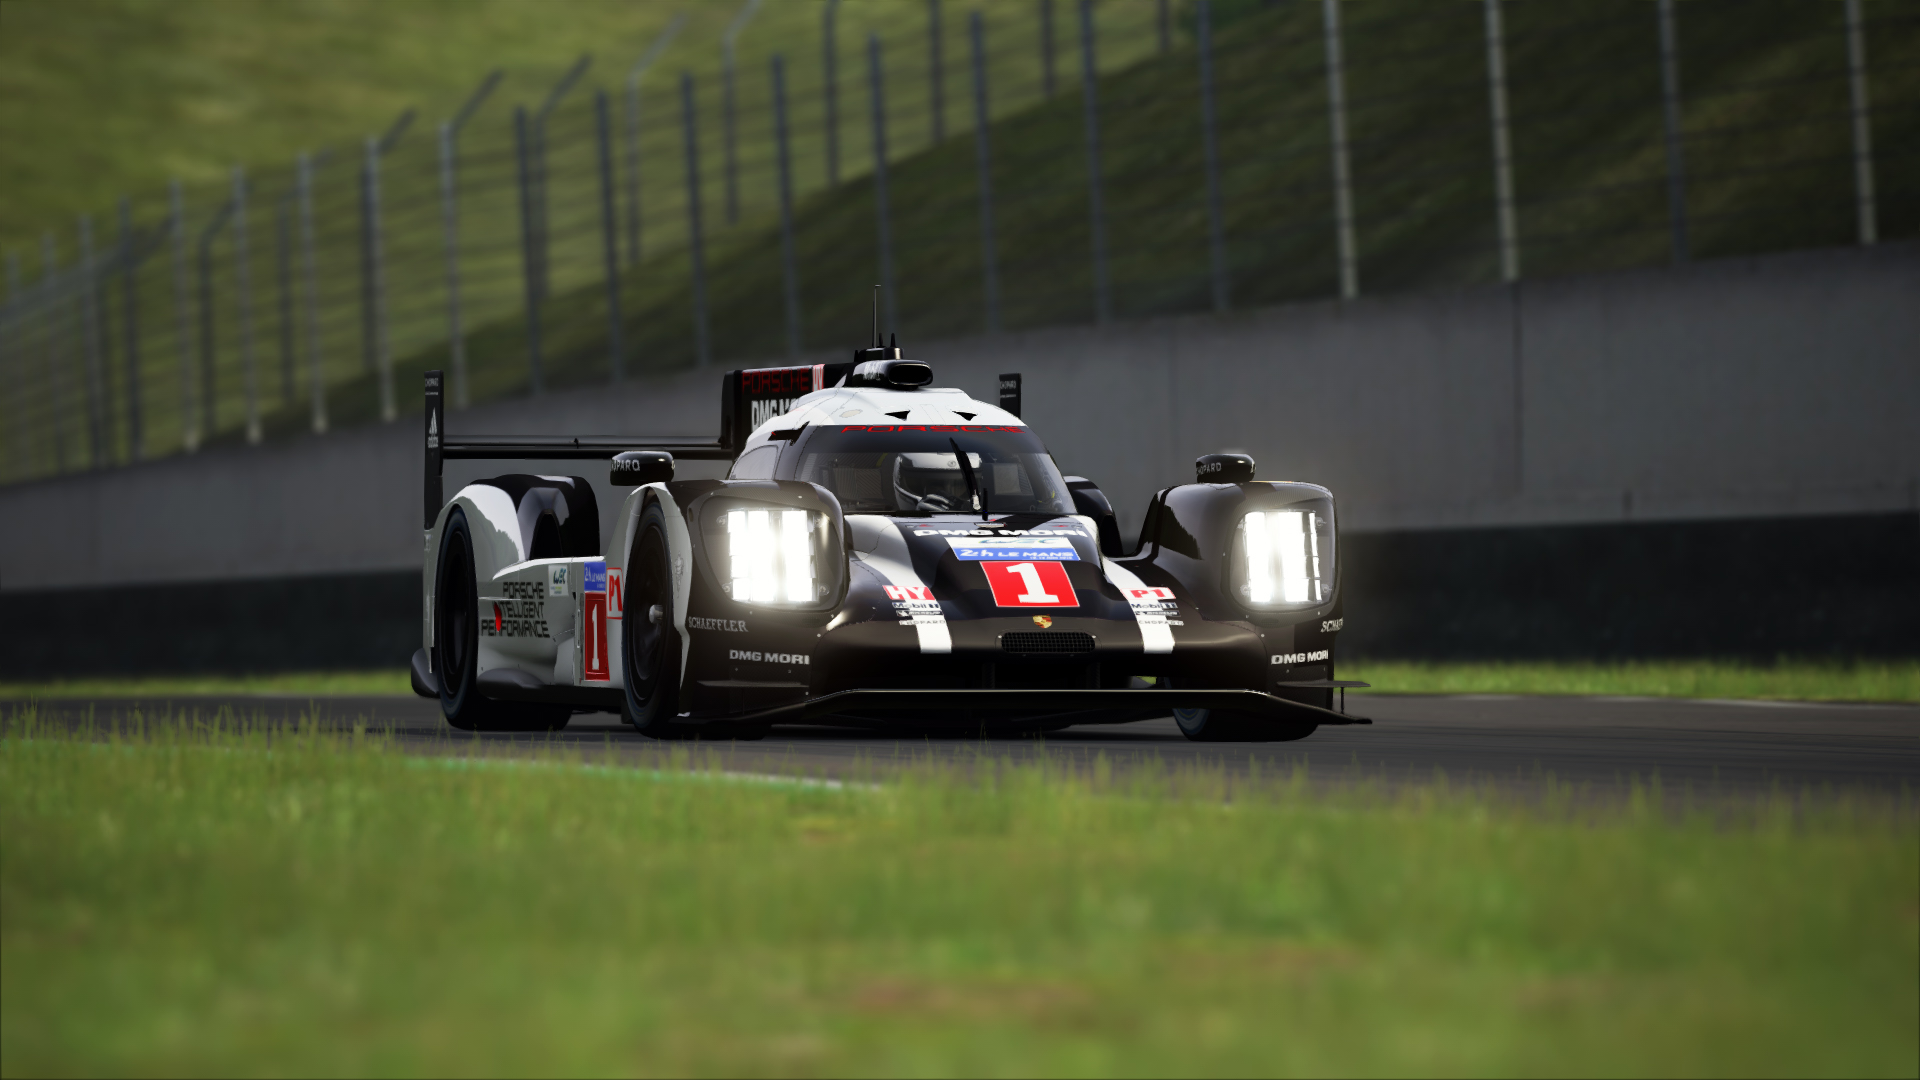 Screenshot_ks_porsche_919_hybrid_2016_mugello_15-7-117-12-24-27.jpg